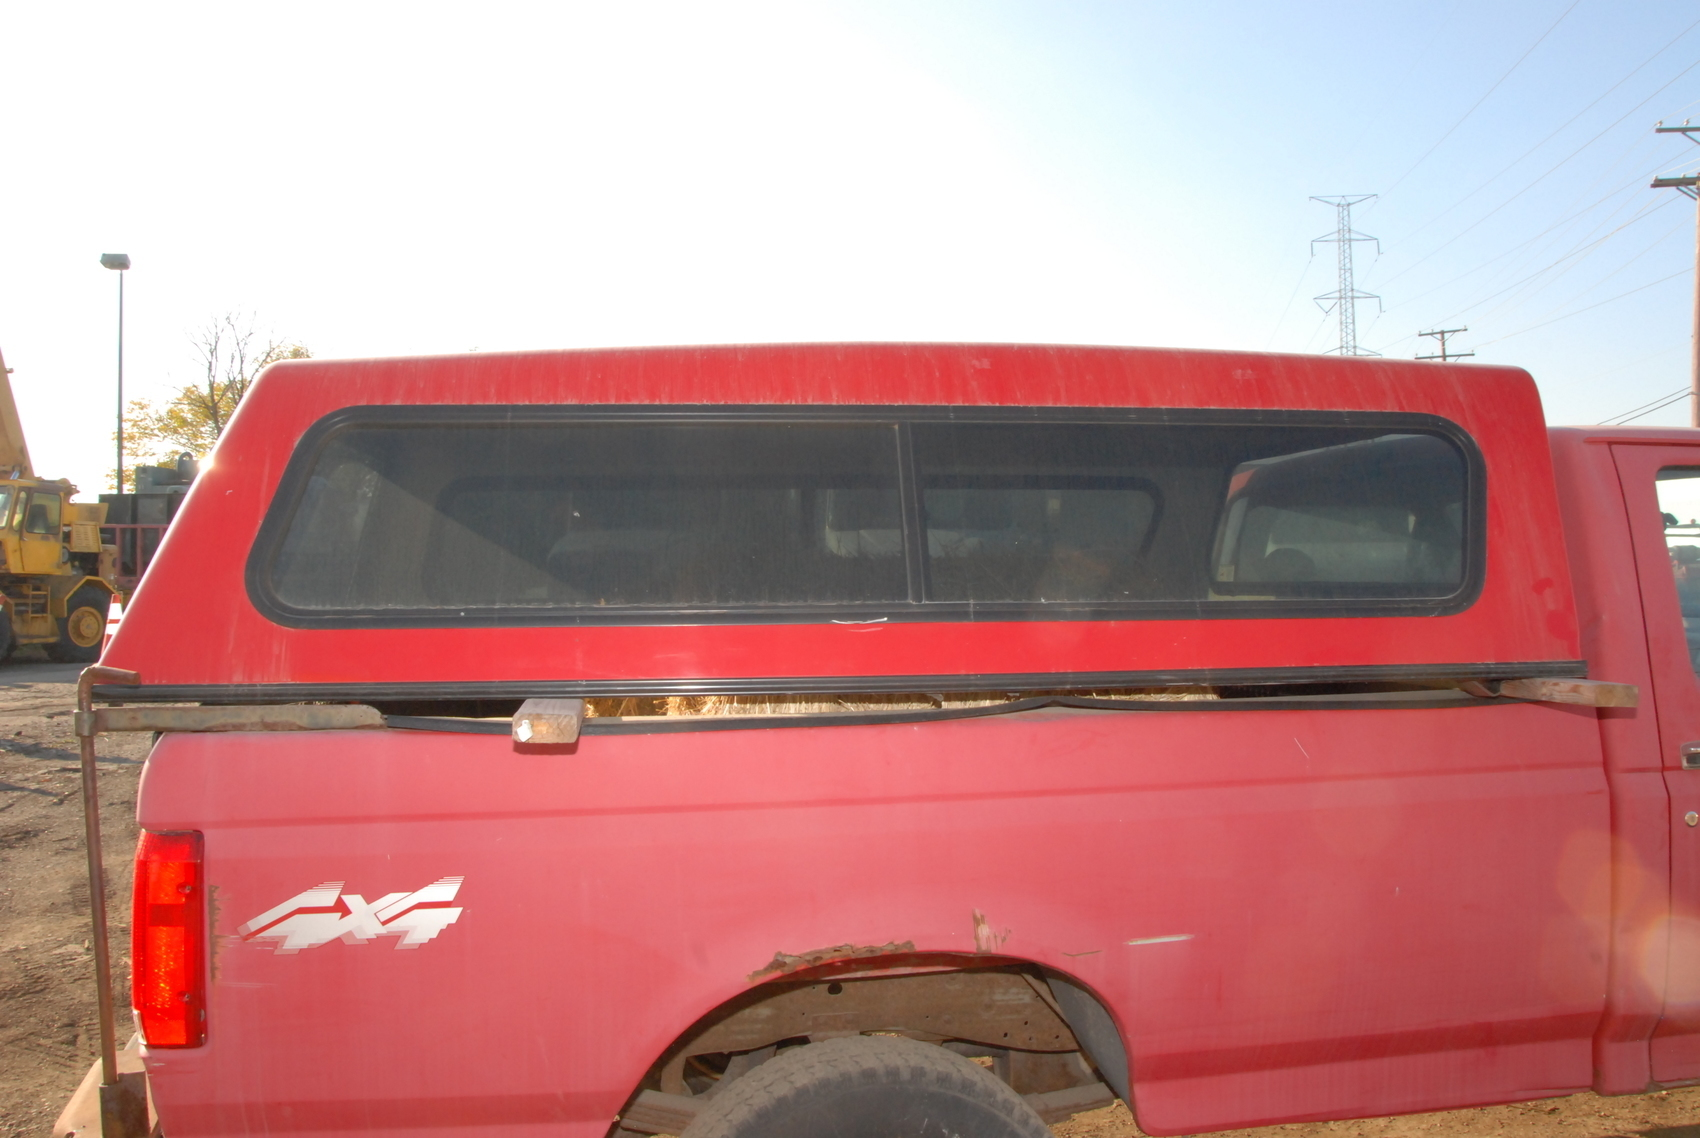 camper shell for ford f250 around year 1997 8 ft bed cap inv 24009 ebay. Black Bedroom Furniture Sets. Home Design Ideas